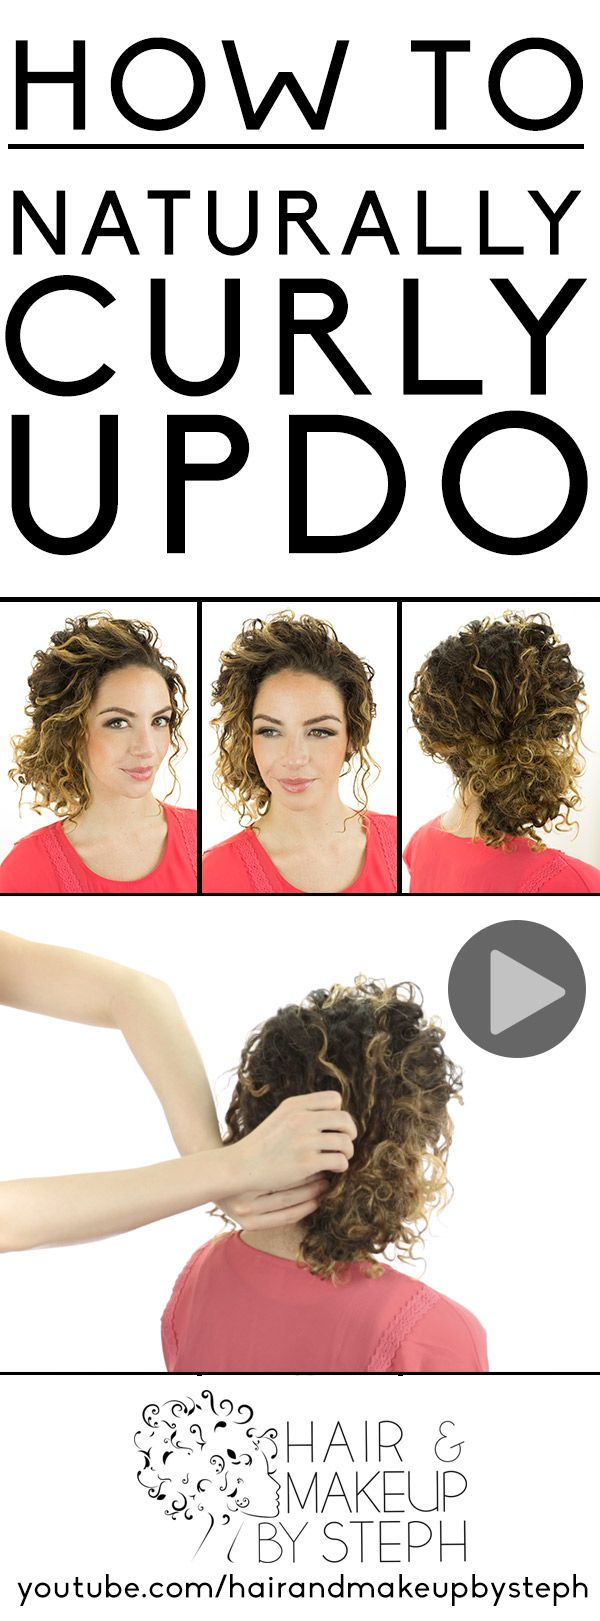 Styling tips and video tutorial for a naturally curly updo. #naturalcurls Got to try this!